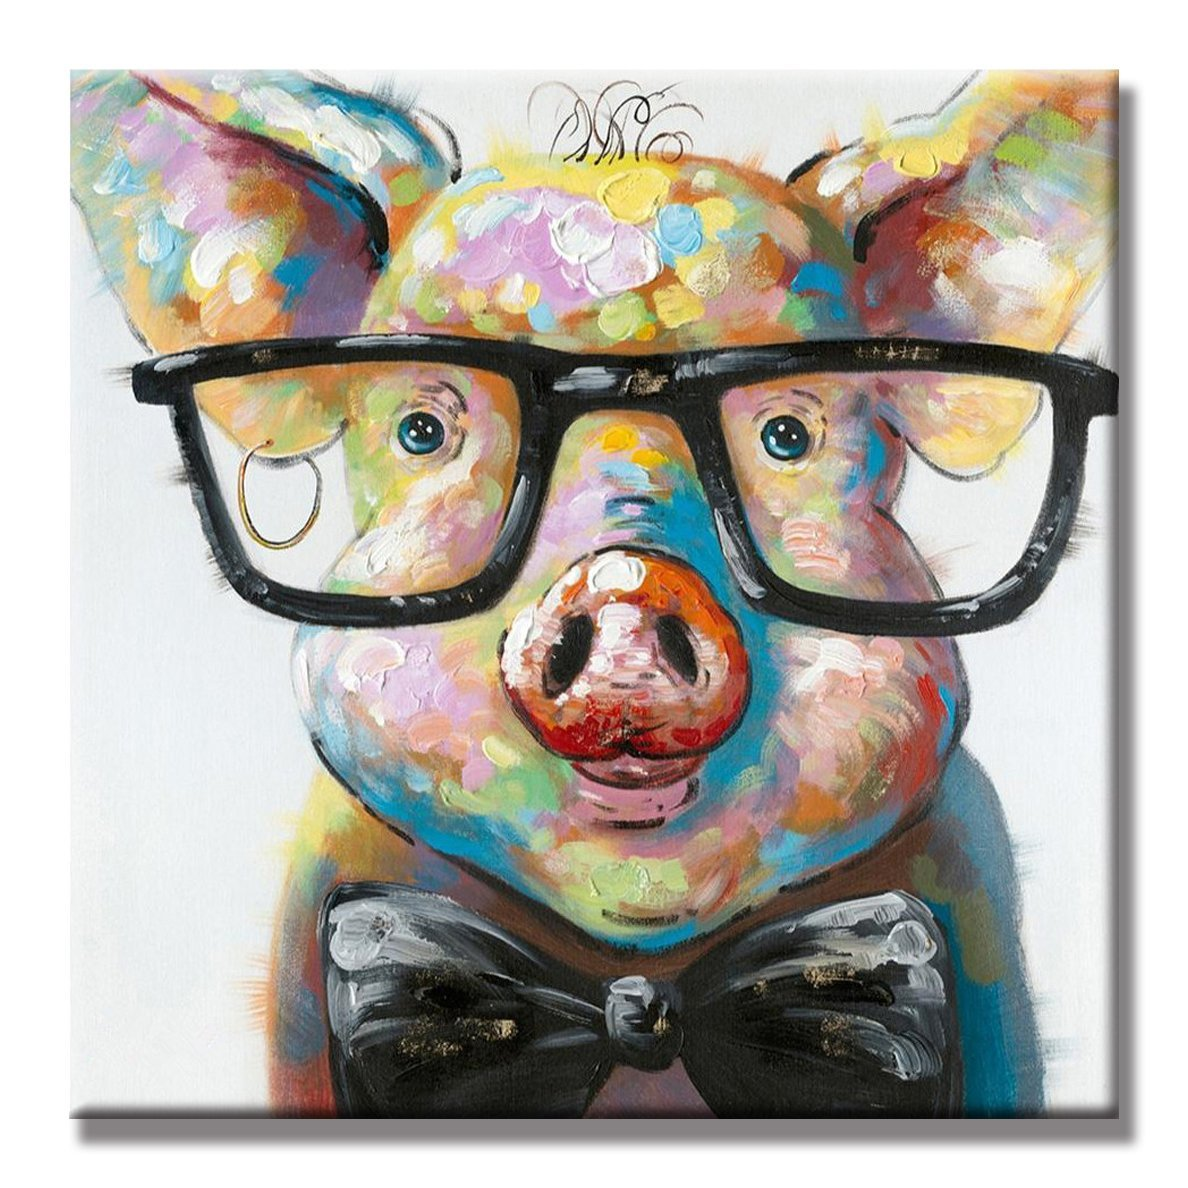 Art-Painting 100% Hand Painted Oil Painting Cute Colorful Animal Smart Potter Pig Decorative Artwork for Home Decor (32x32 Inch)